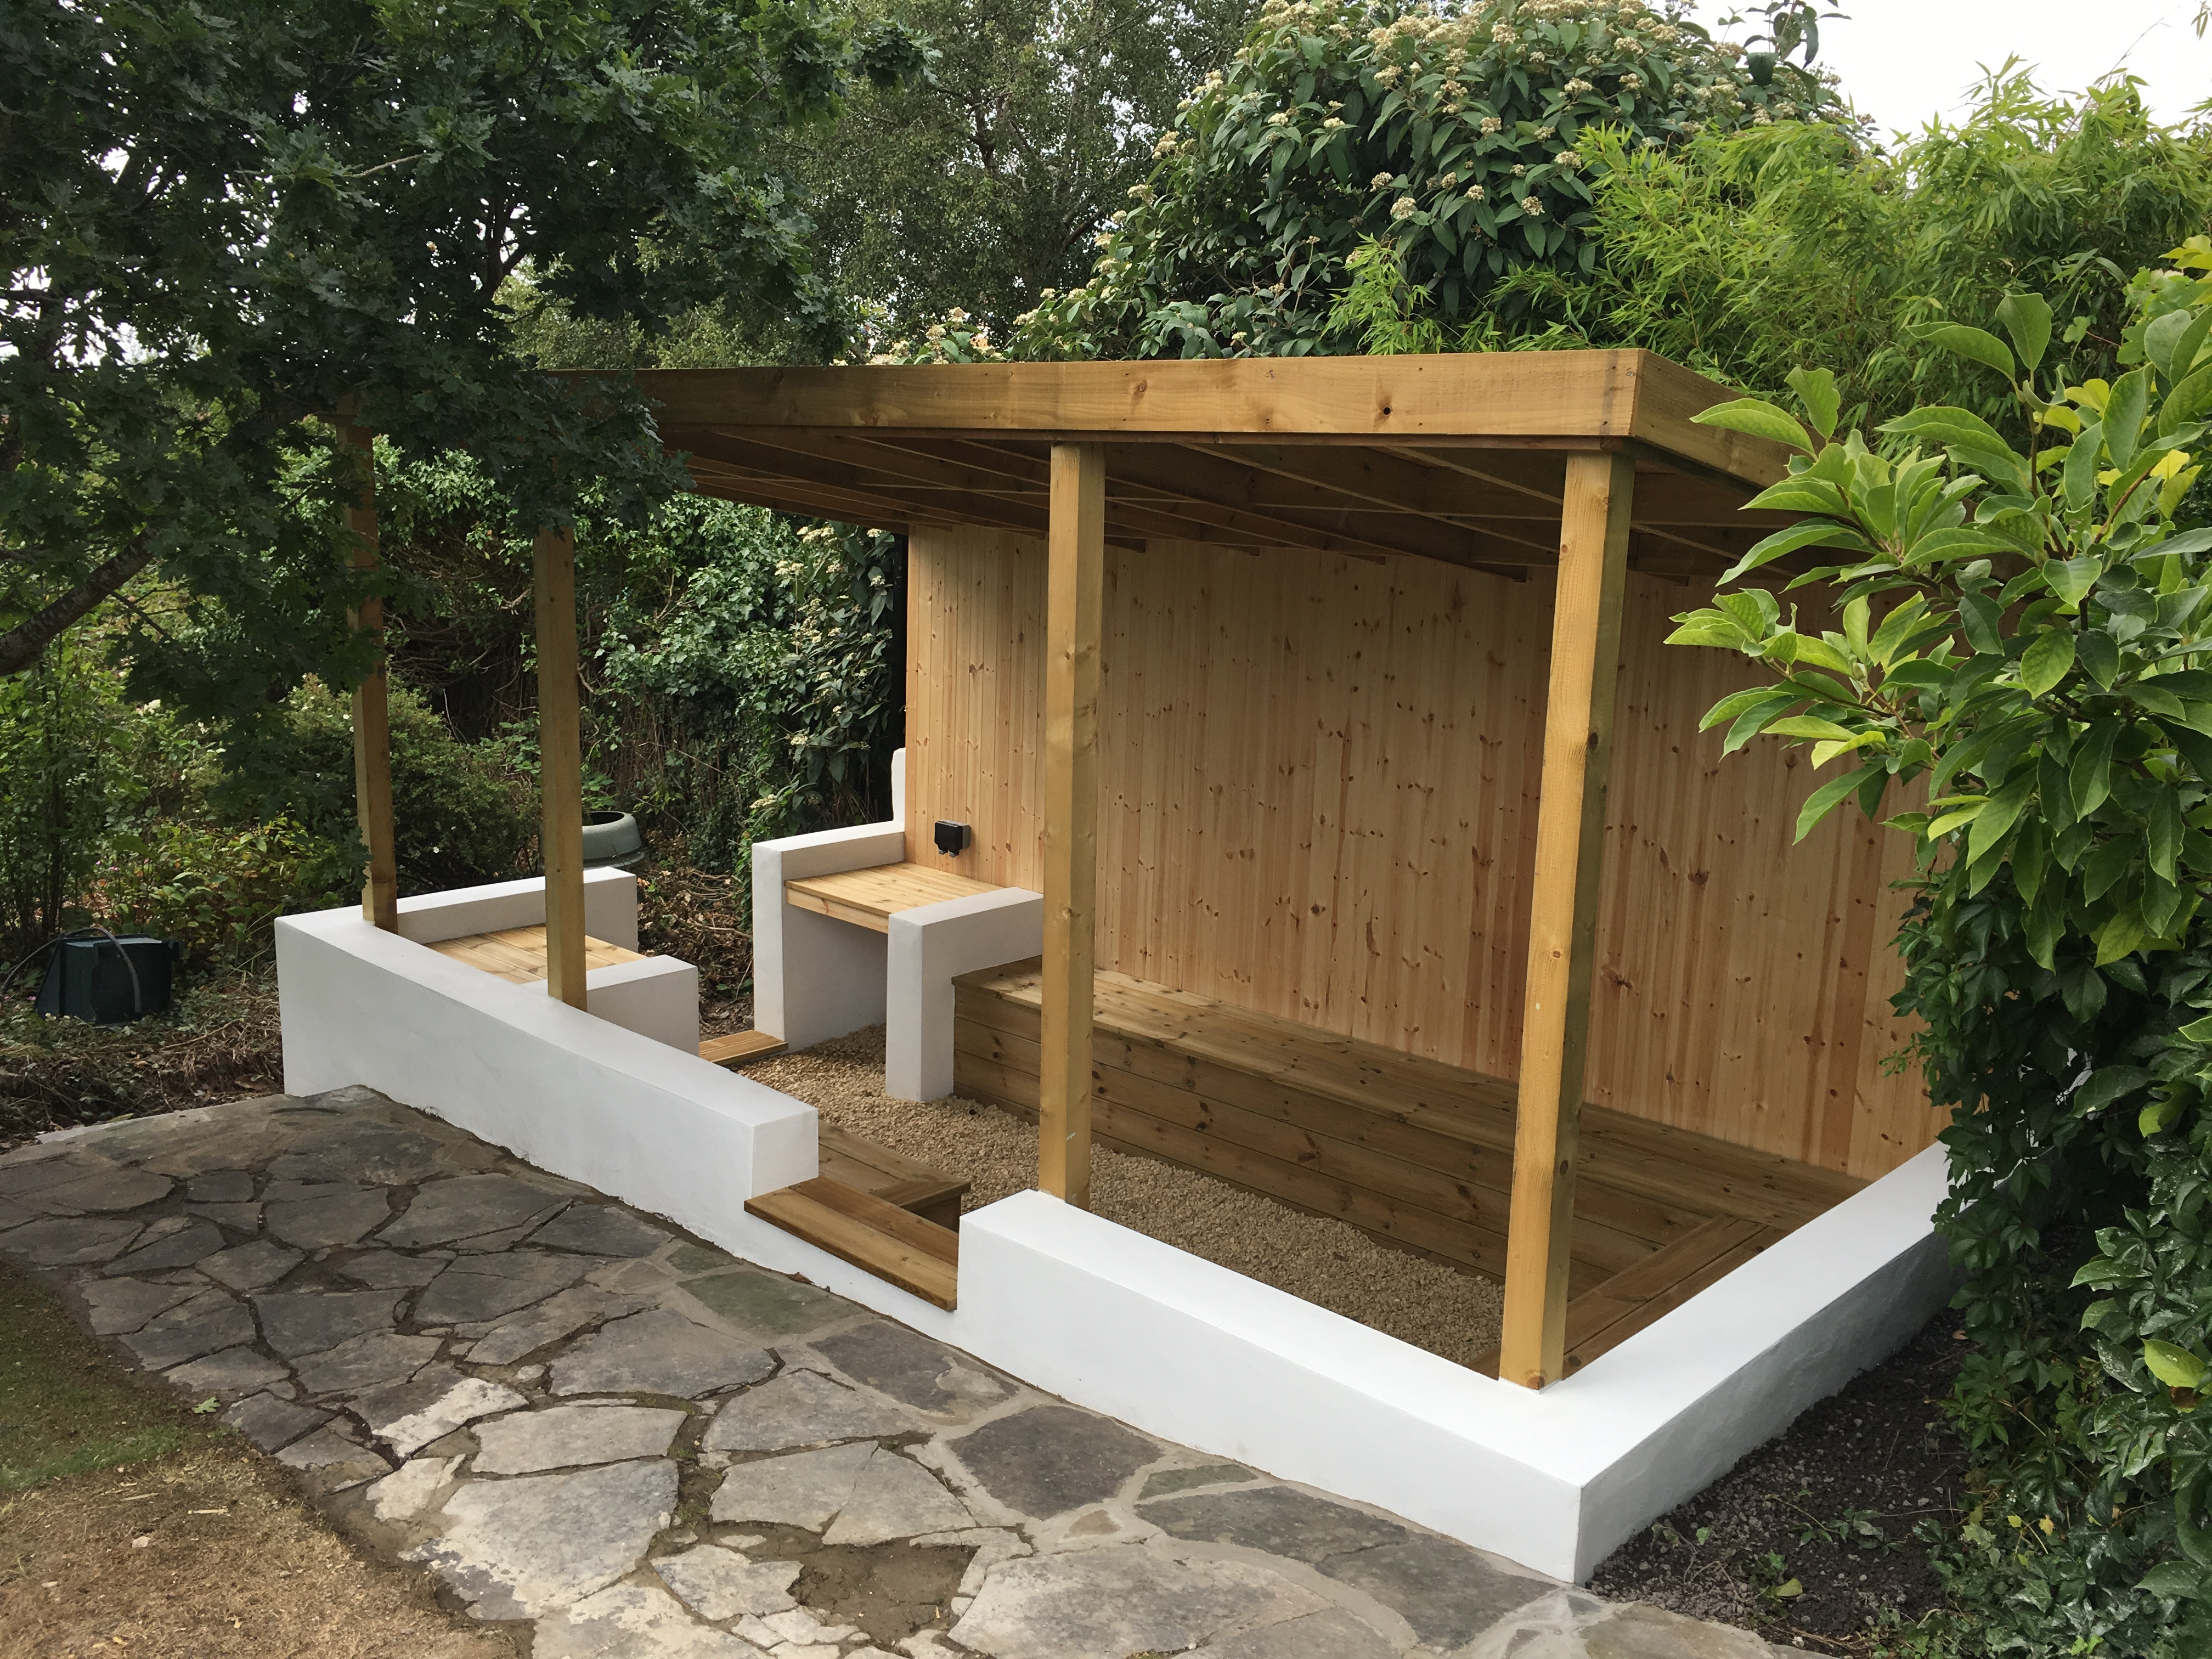 Sheltered garden seating area